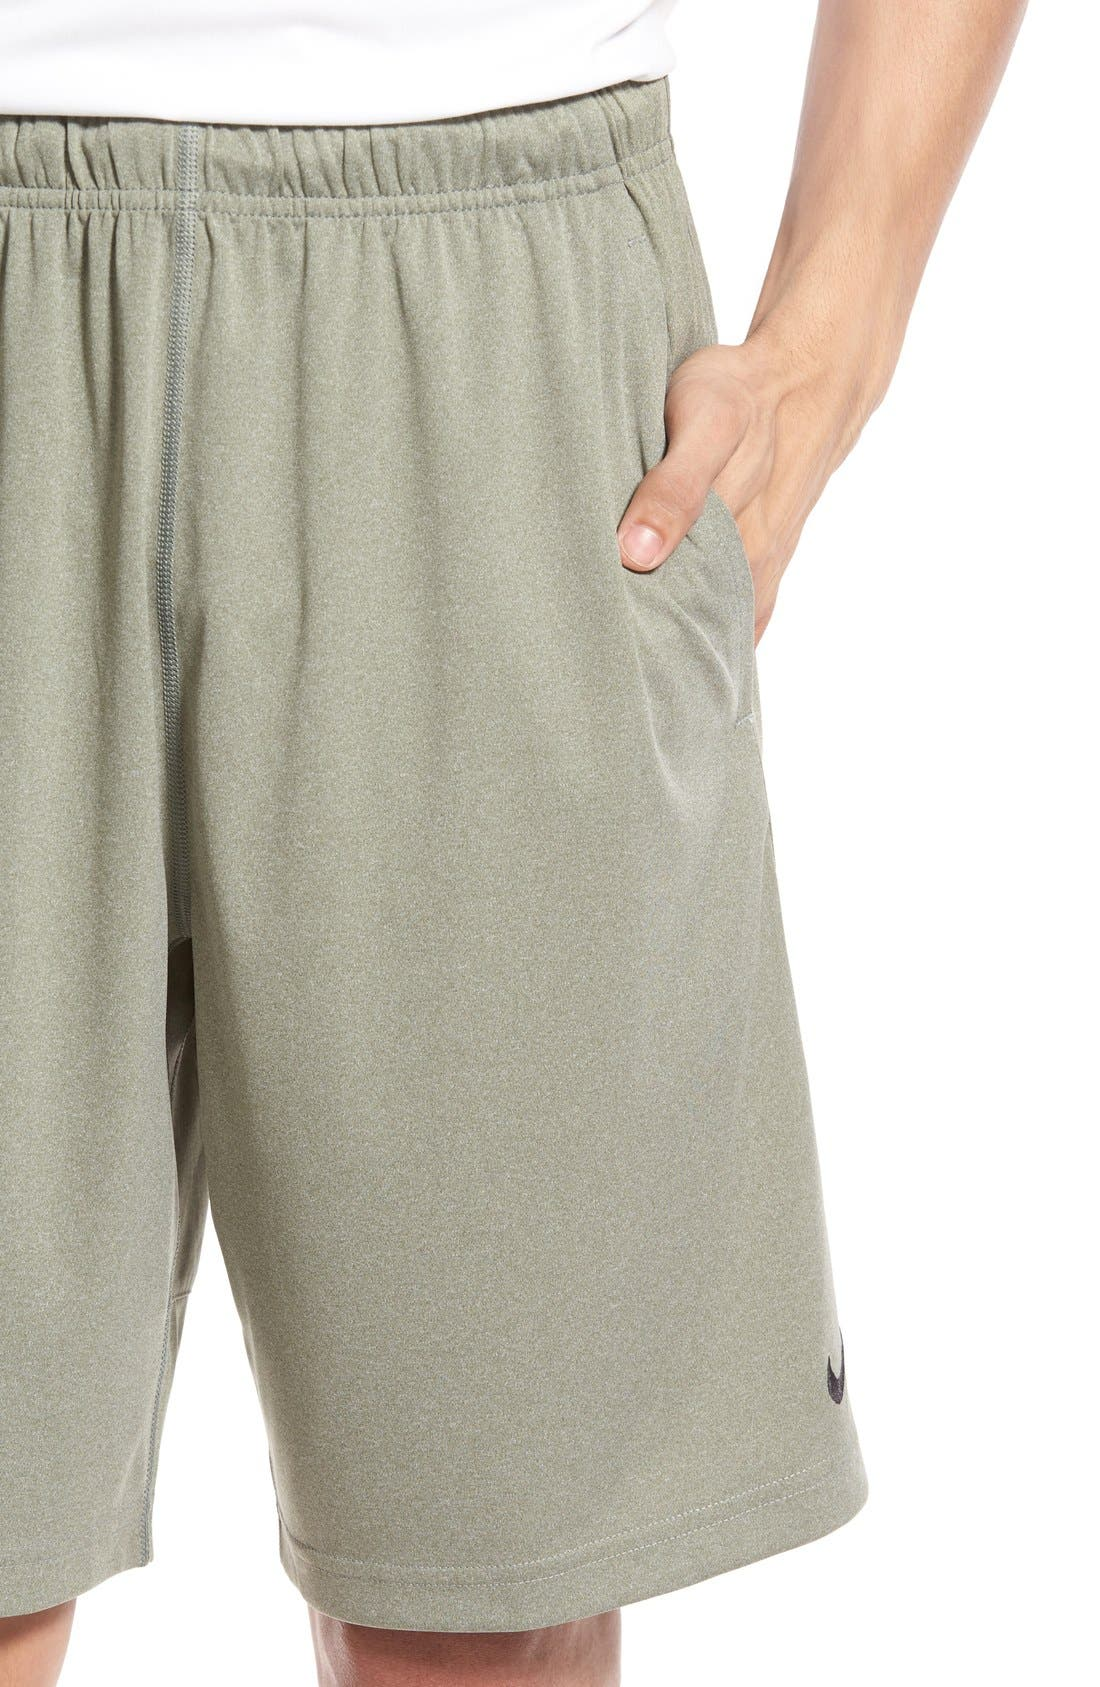 'Fly' Dri-FIT Training Shorts,                             Alternate thumbnail 38, color,